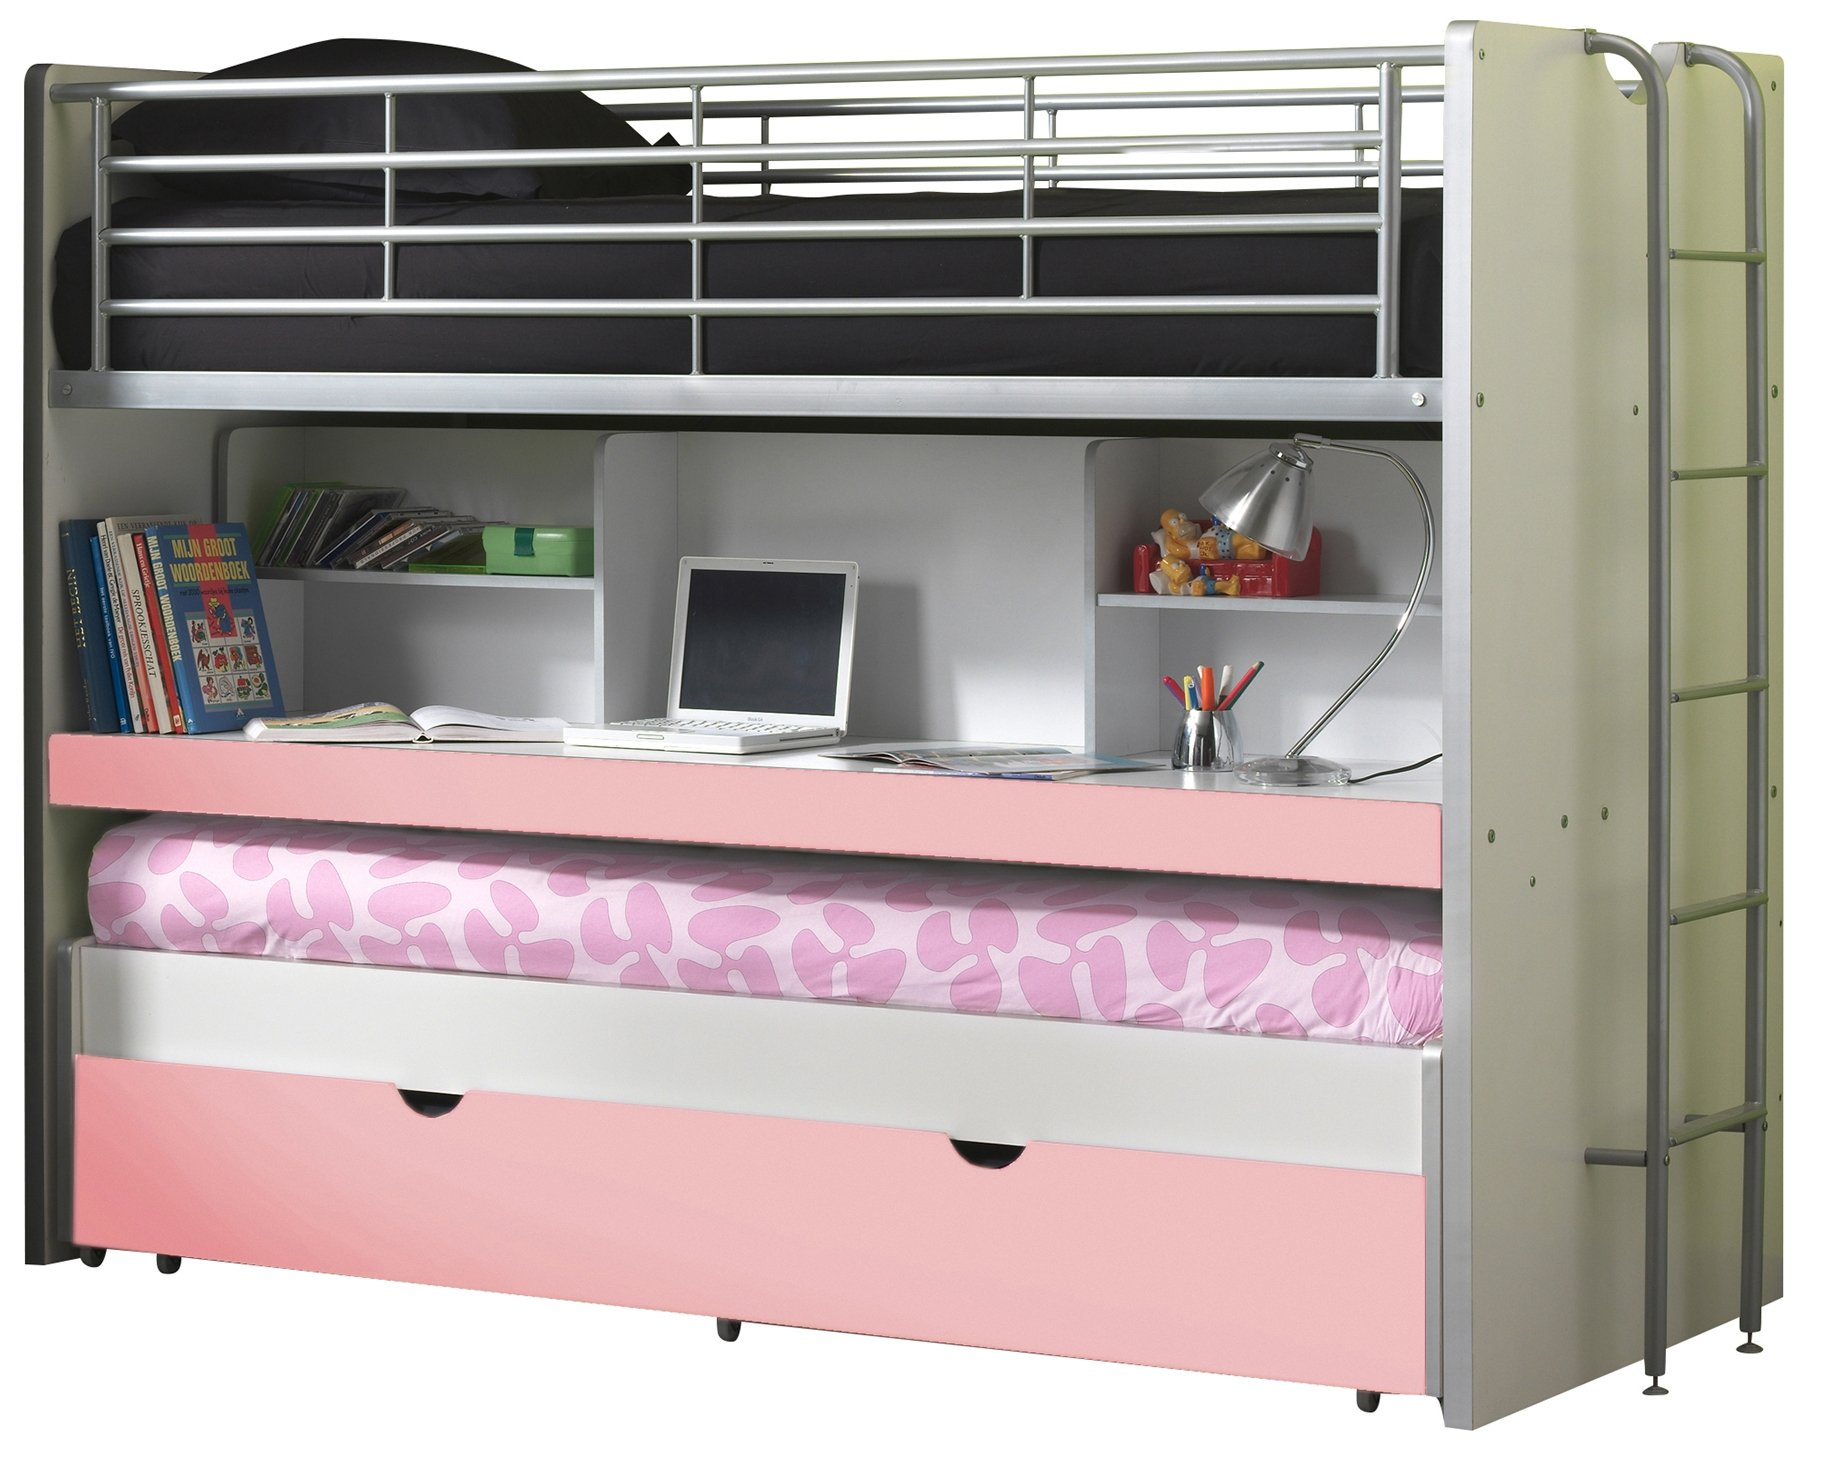 Vipack BOHS8015Bunk Beds Bonny, 207x 116x 98cm, lying surface 90x 200cm, White/Pink Vipack Cabin bed with 2Sleeping surfaces 90x 200cm and 1drawer. Extendable Work Surface. Chipboard White MDF fronts and varnish with fall protection 1